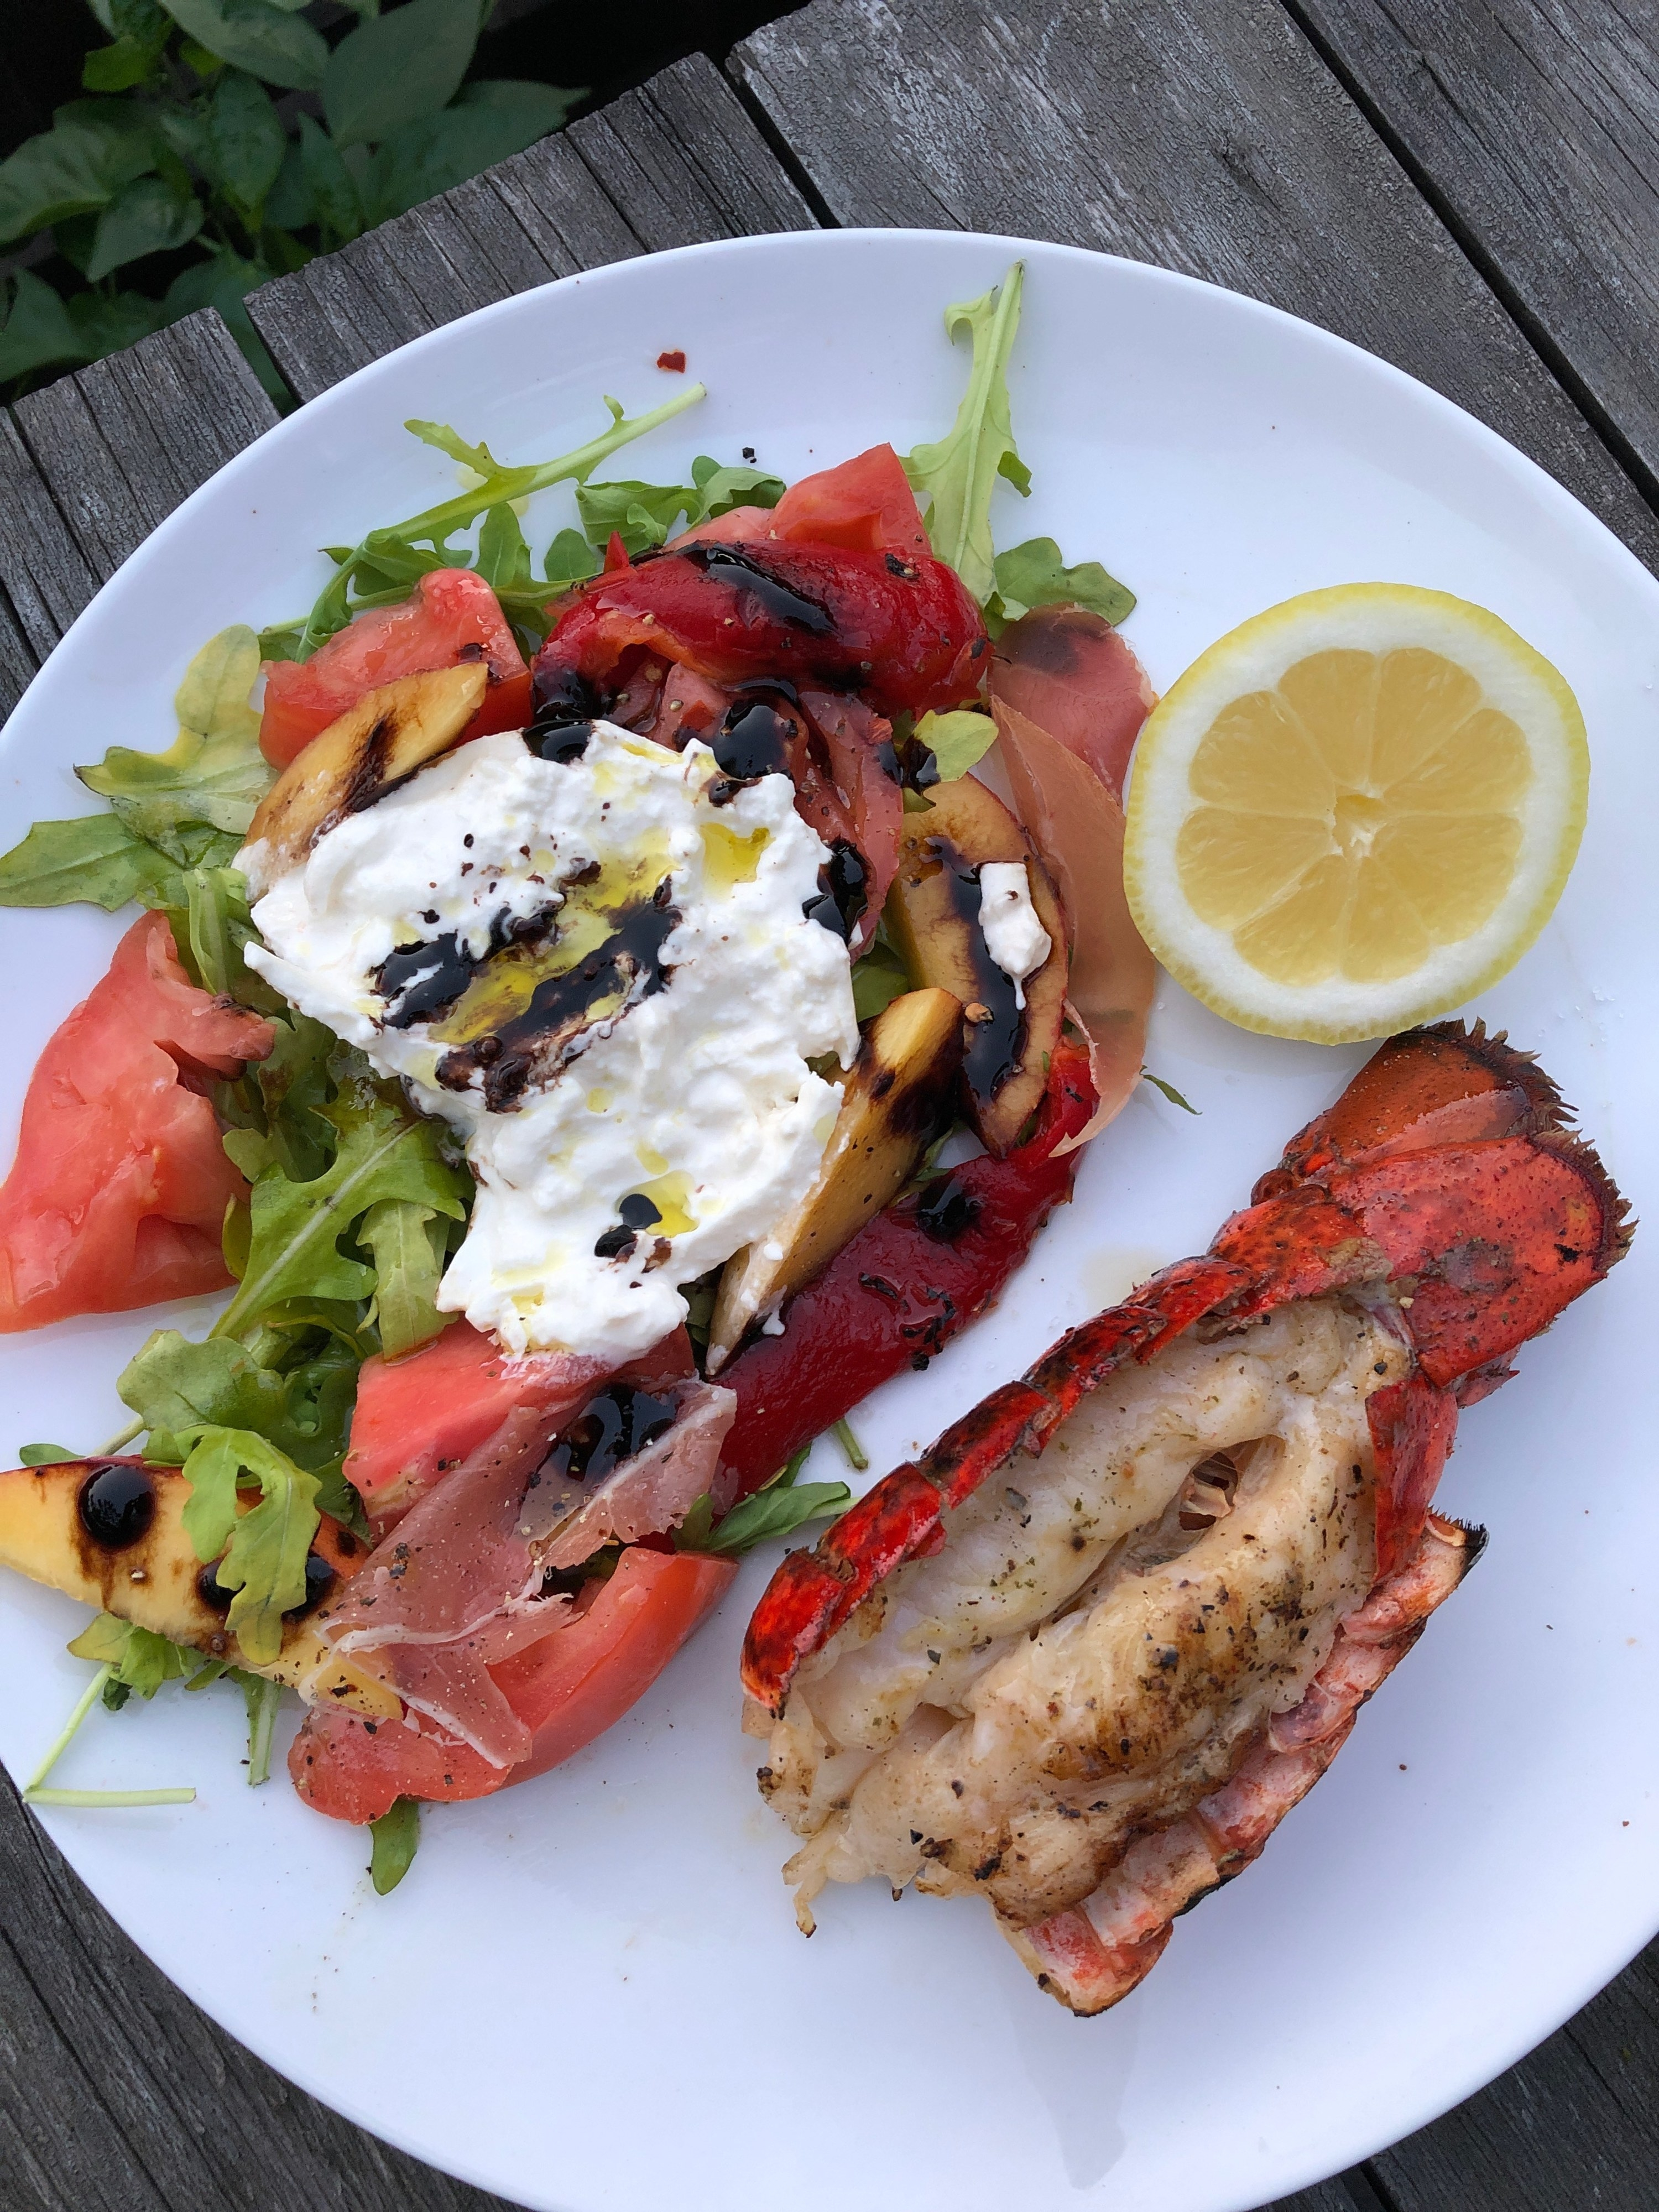 A grilled lobster tail on a plate with a tomato and burrata salad.